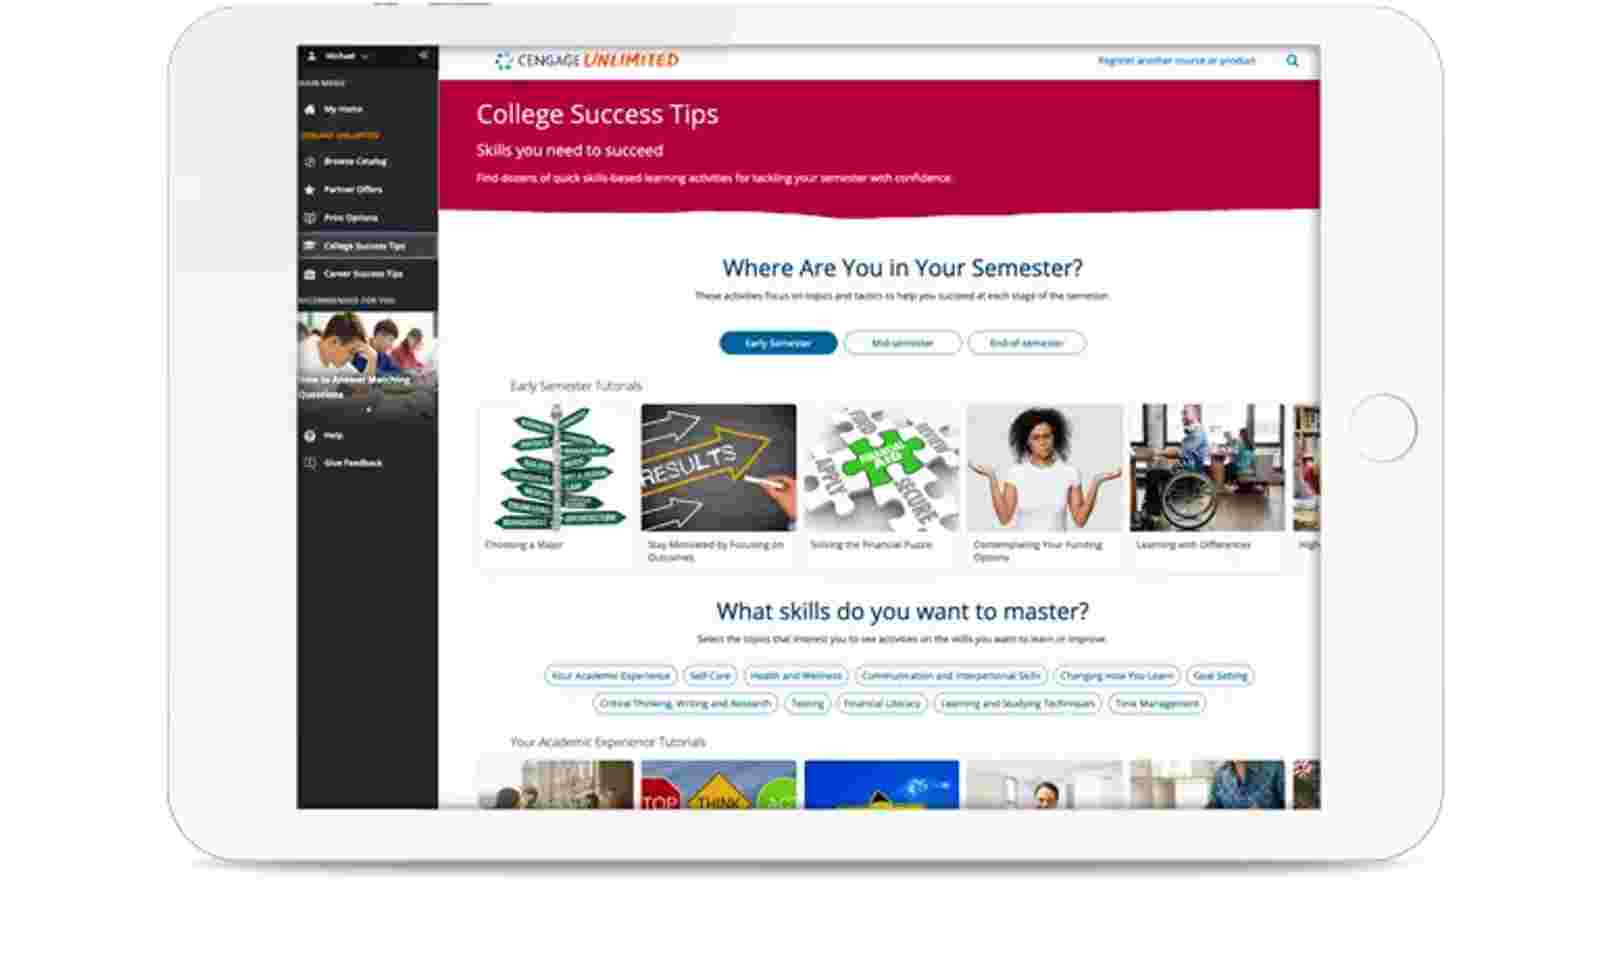 Tablet showing college success tips screen